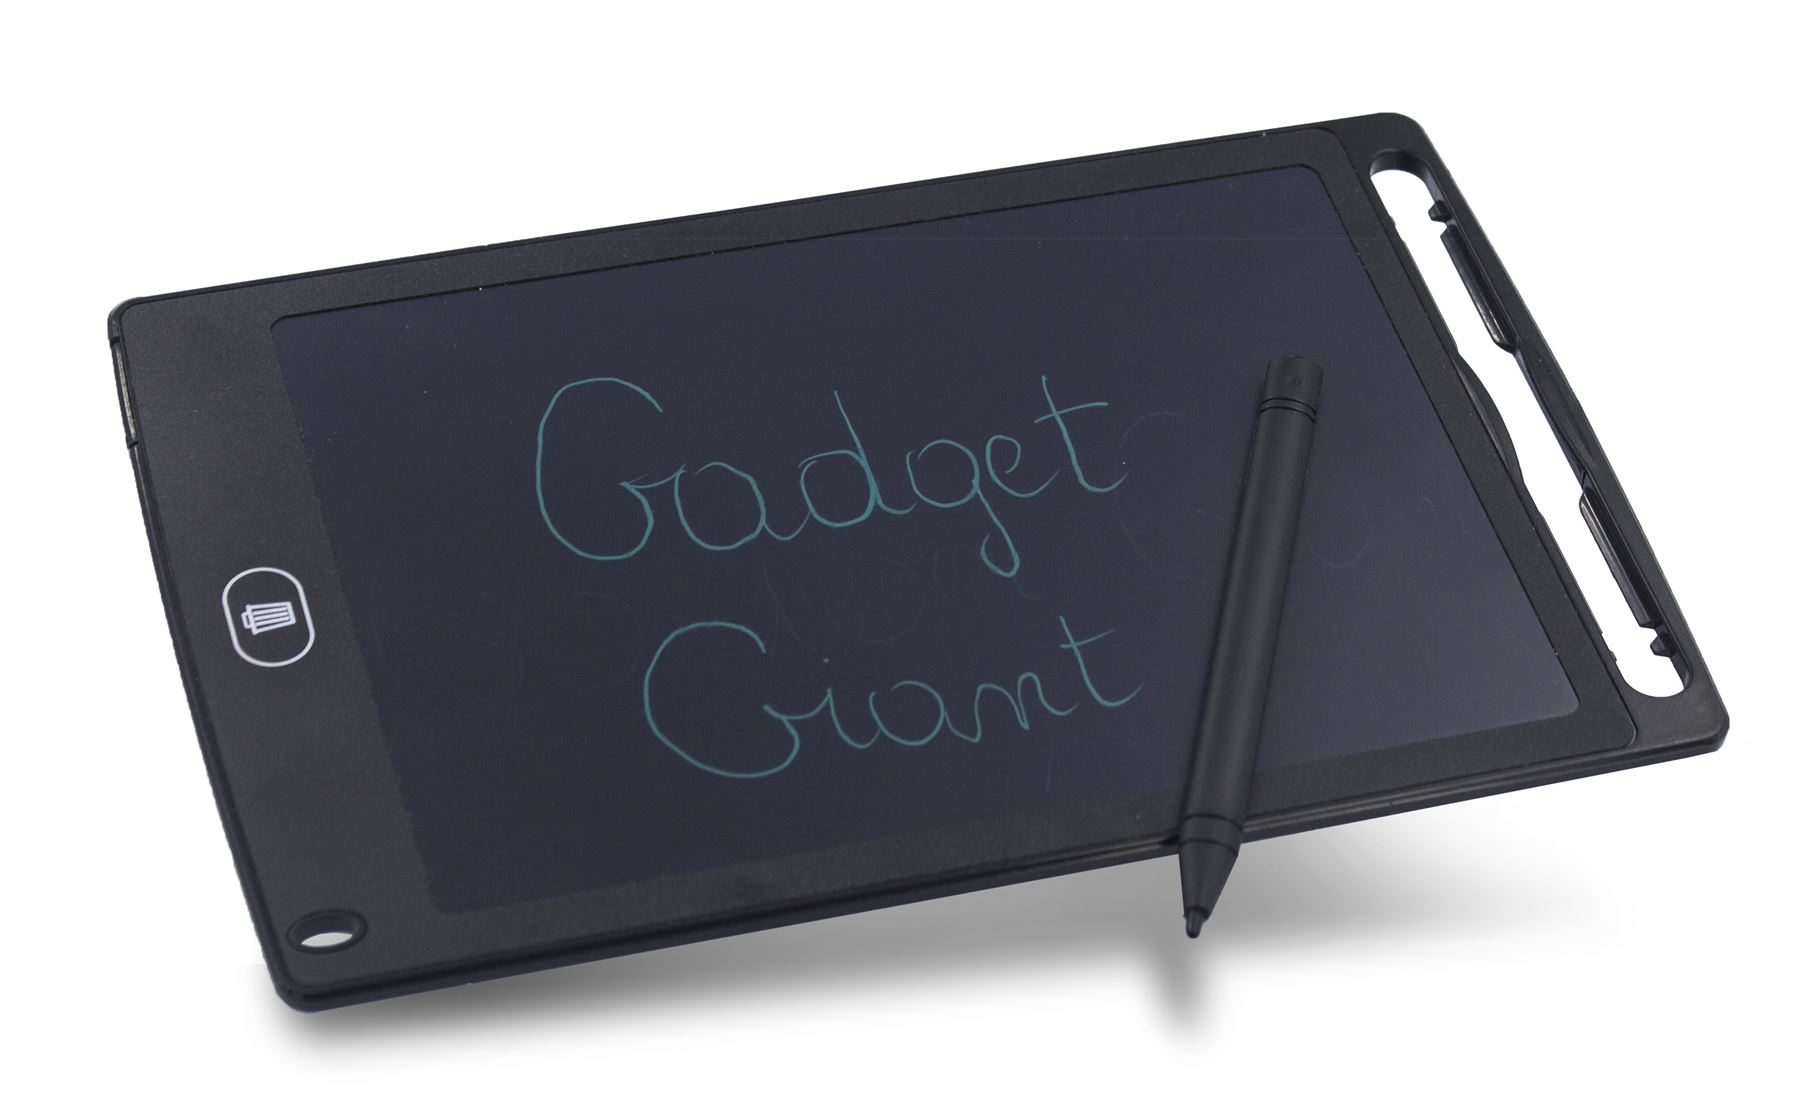 LCD Electronic Writing Doodle Tablet Drawing Board Pad for Kids with Stylus Pen